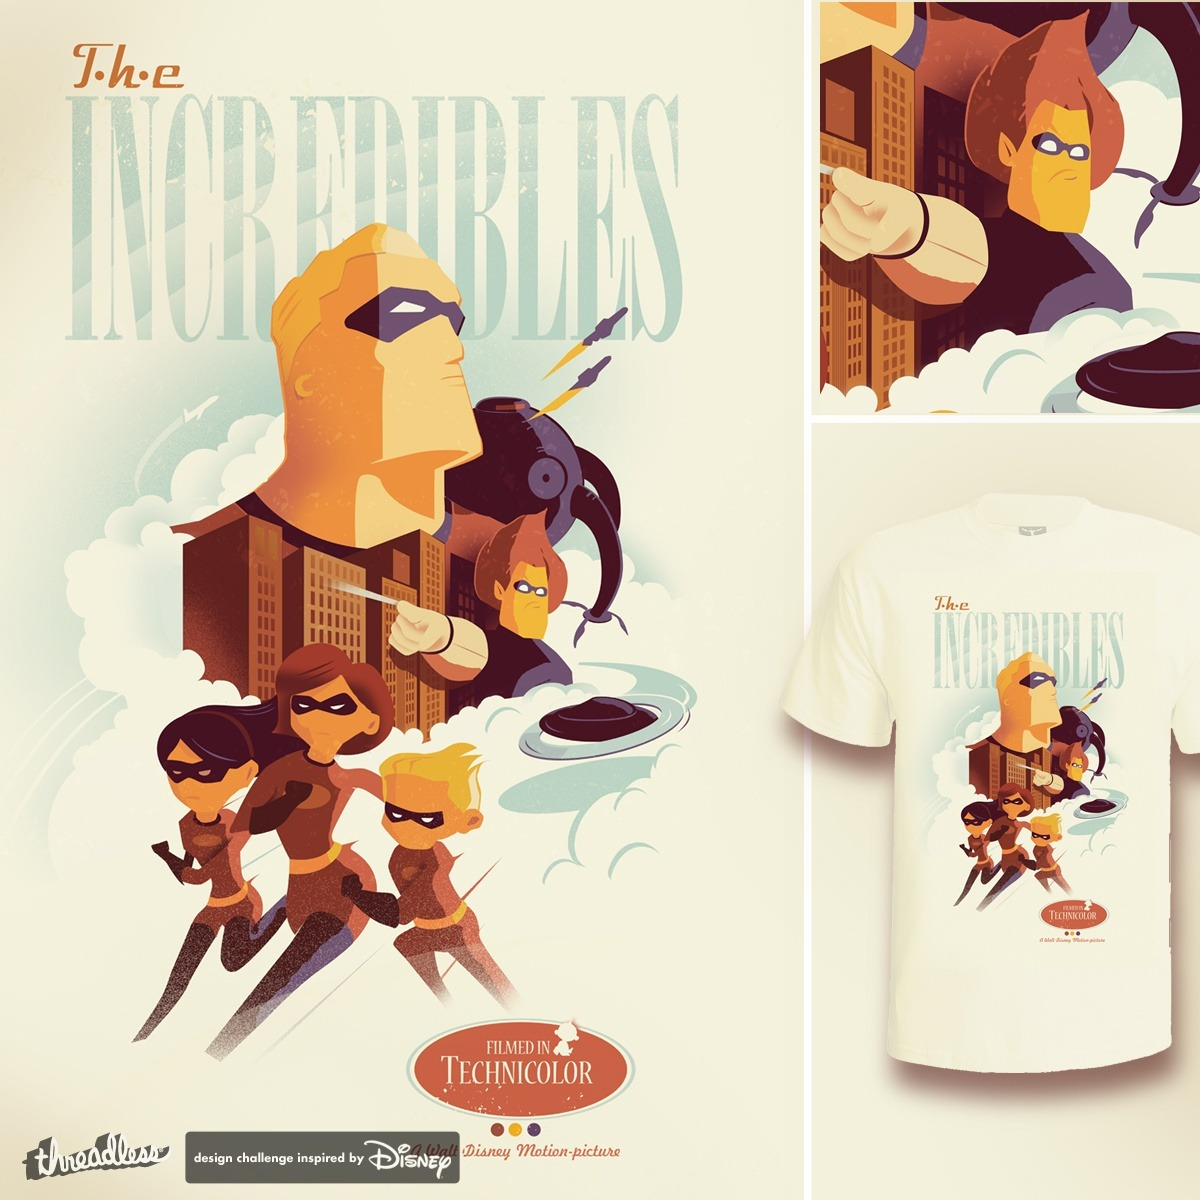 """INCREDIBLES TO THE RESCUE"" by teedotdraws is currently the highest scoring design in our Disney•Pixar's The Incredibles design challenge! Here's a little background about this submission from the artist: ""Wanted to capture the great sense of action in this movie…poster style!"" Score some designs from this challenge to help us decide which submissions to print!"